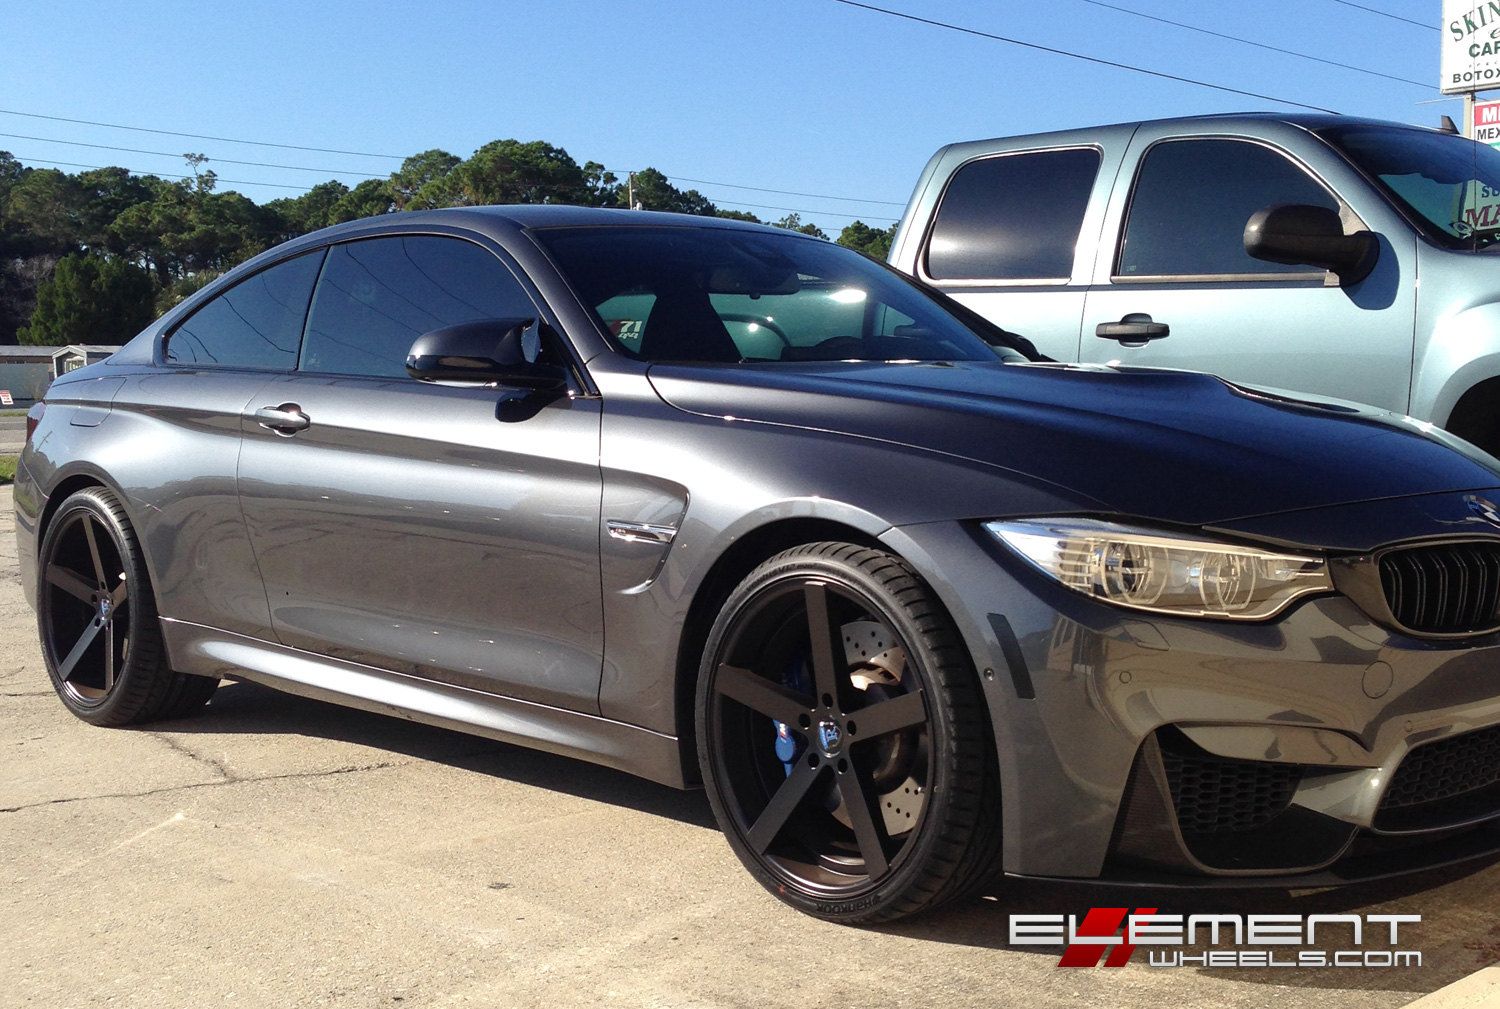 Bmw M4 Wheels Custom Rim And Tire Packages